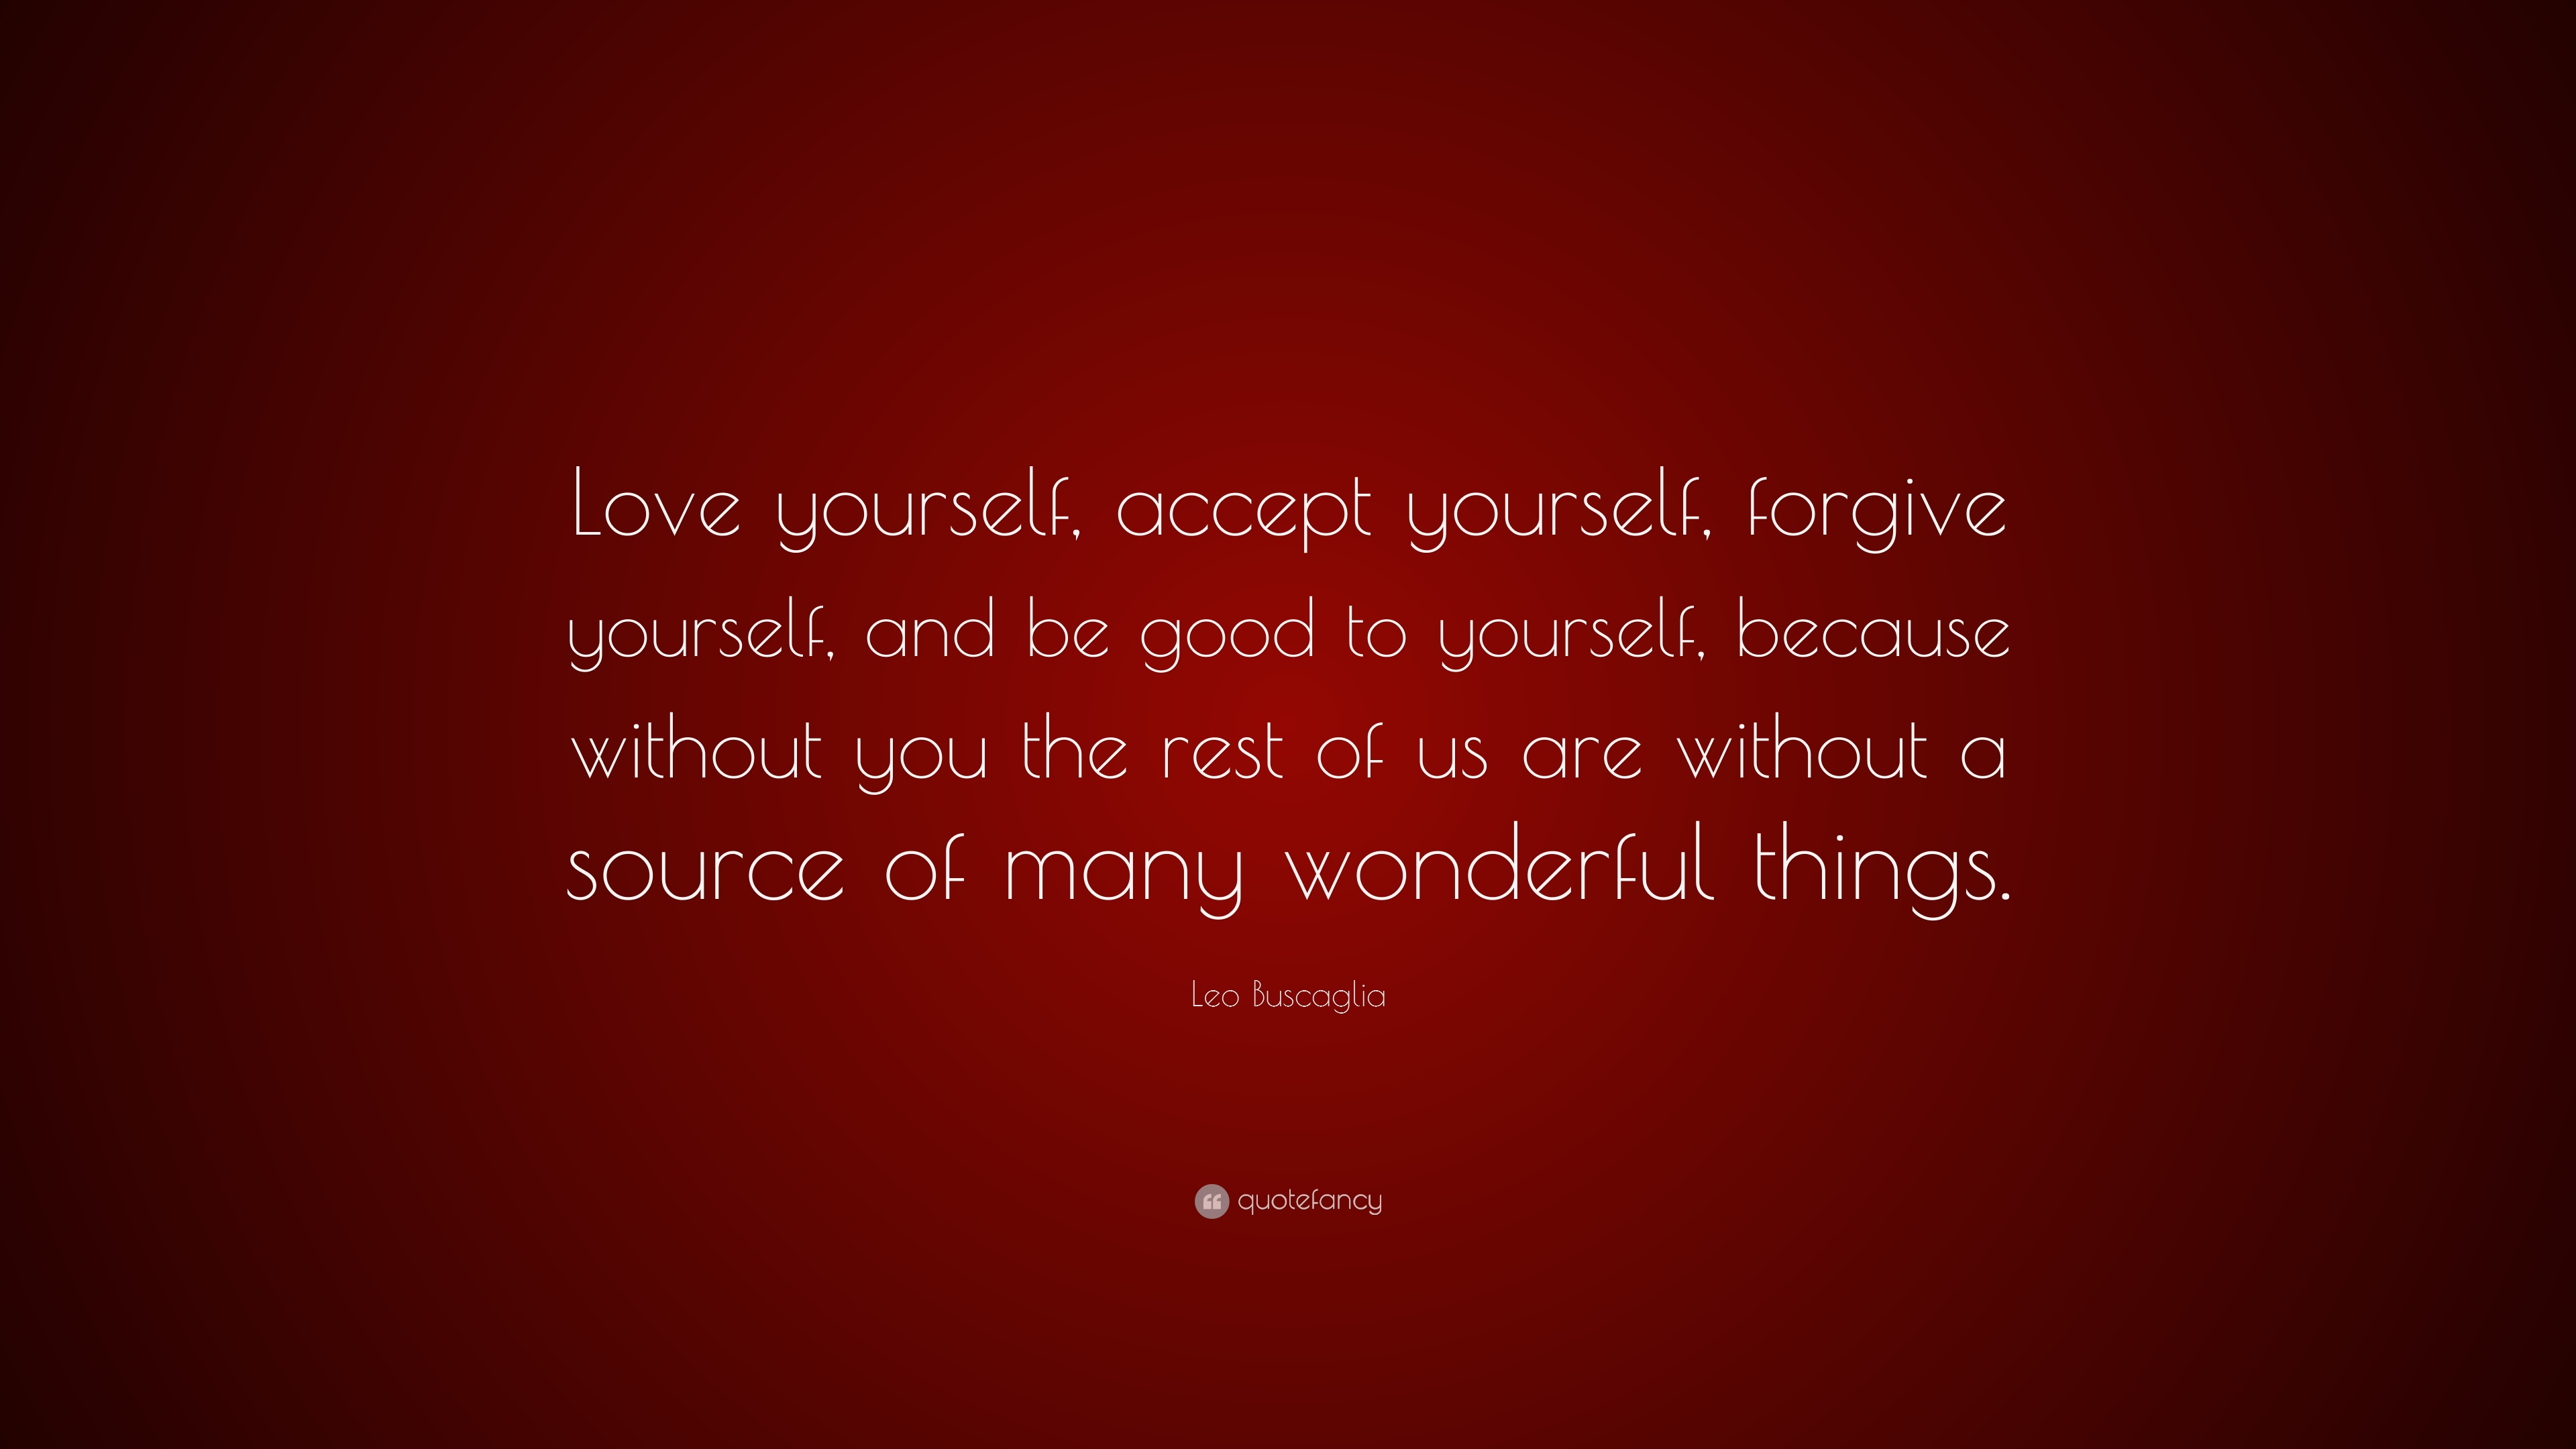 Quotes About Loving Yourself Quotes Love Yourself Inspiration 100 Quotes About Loving Yourself